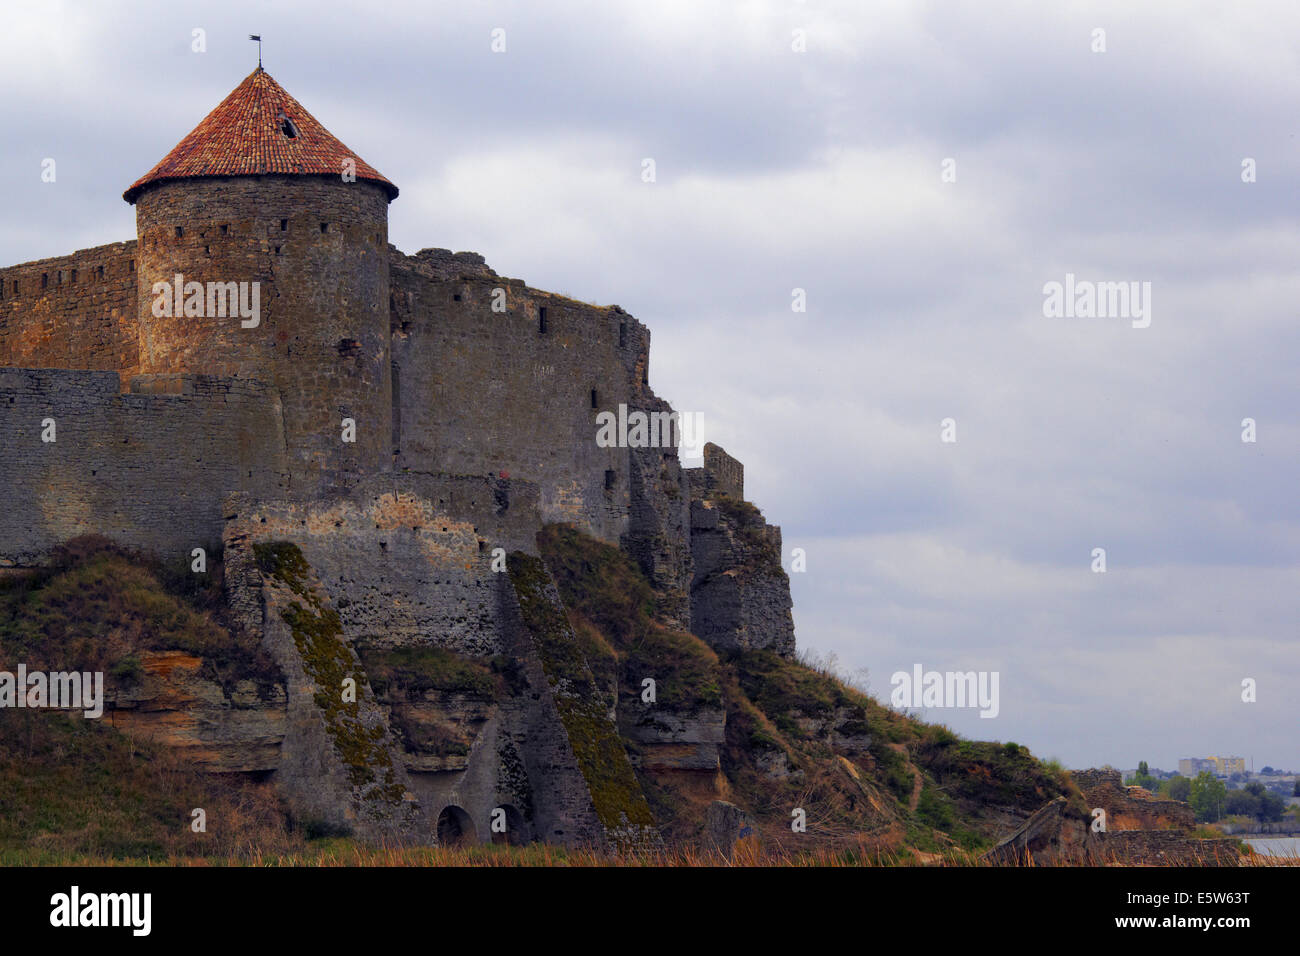 Attractive Old Military Fortress In Ukraine Photo